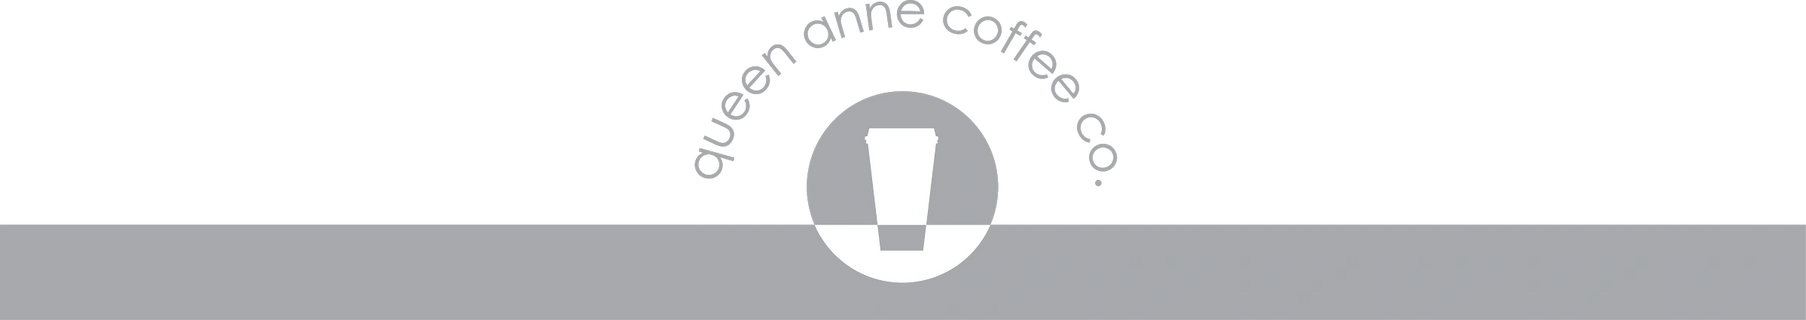 QUEENANNECOFFEECO.COM